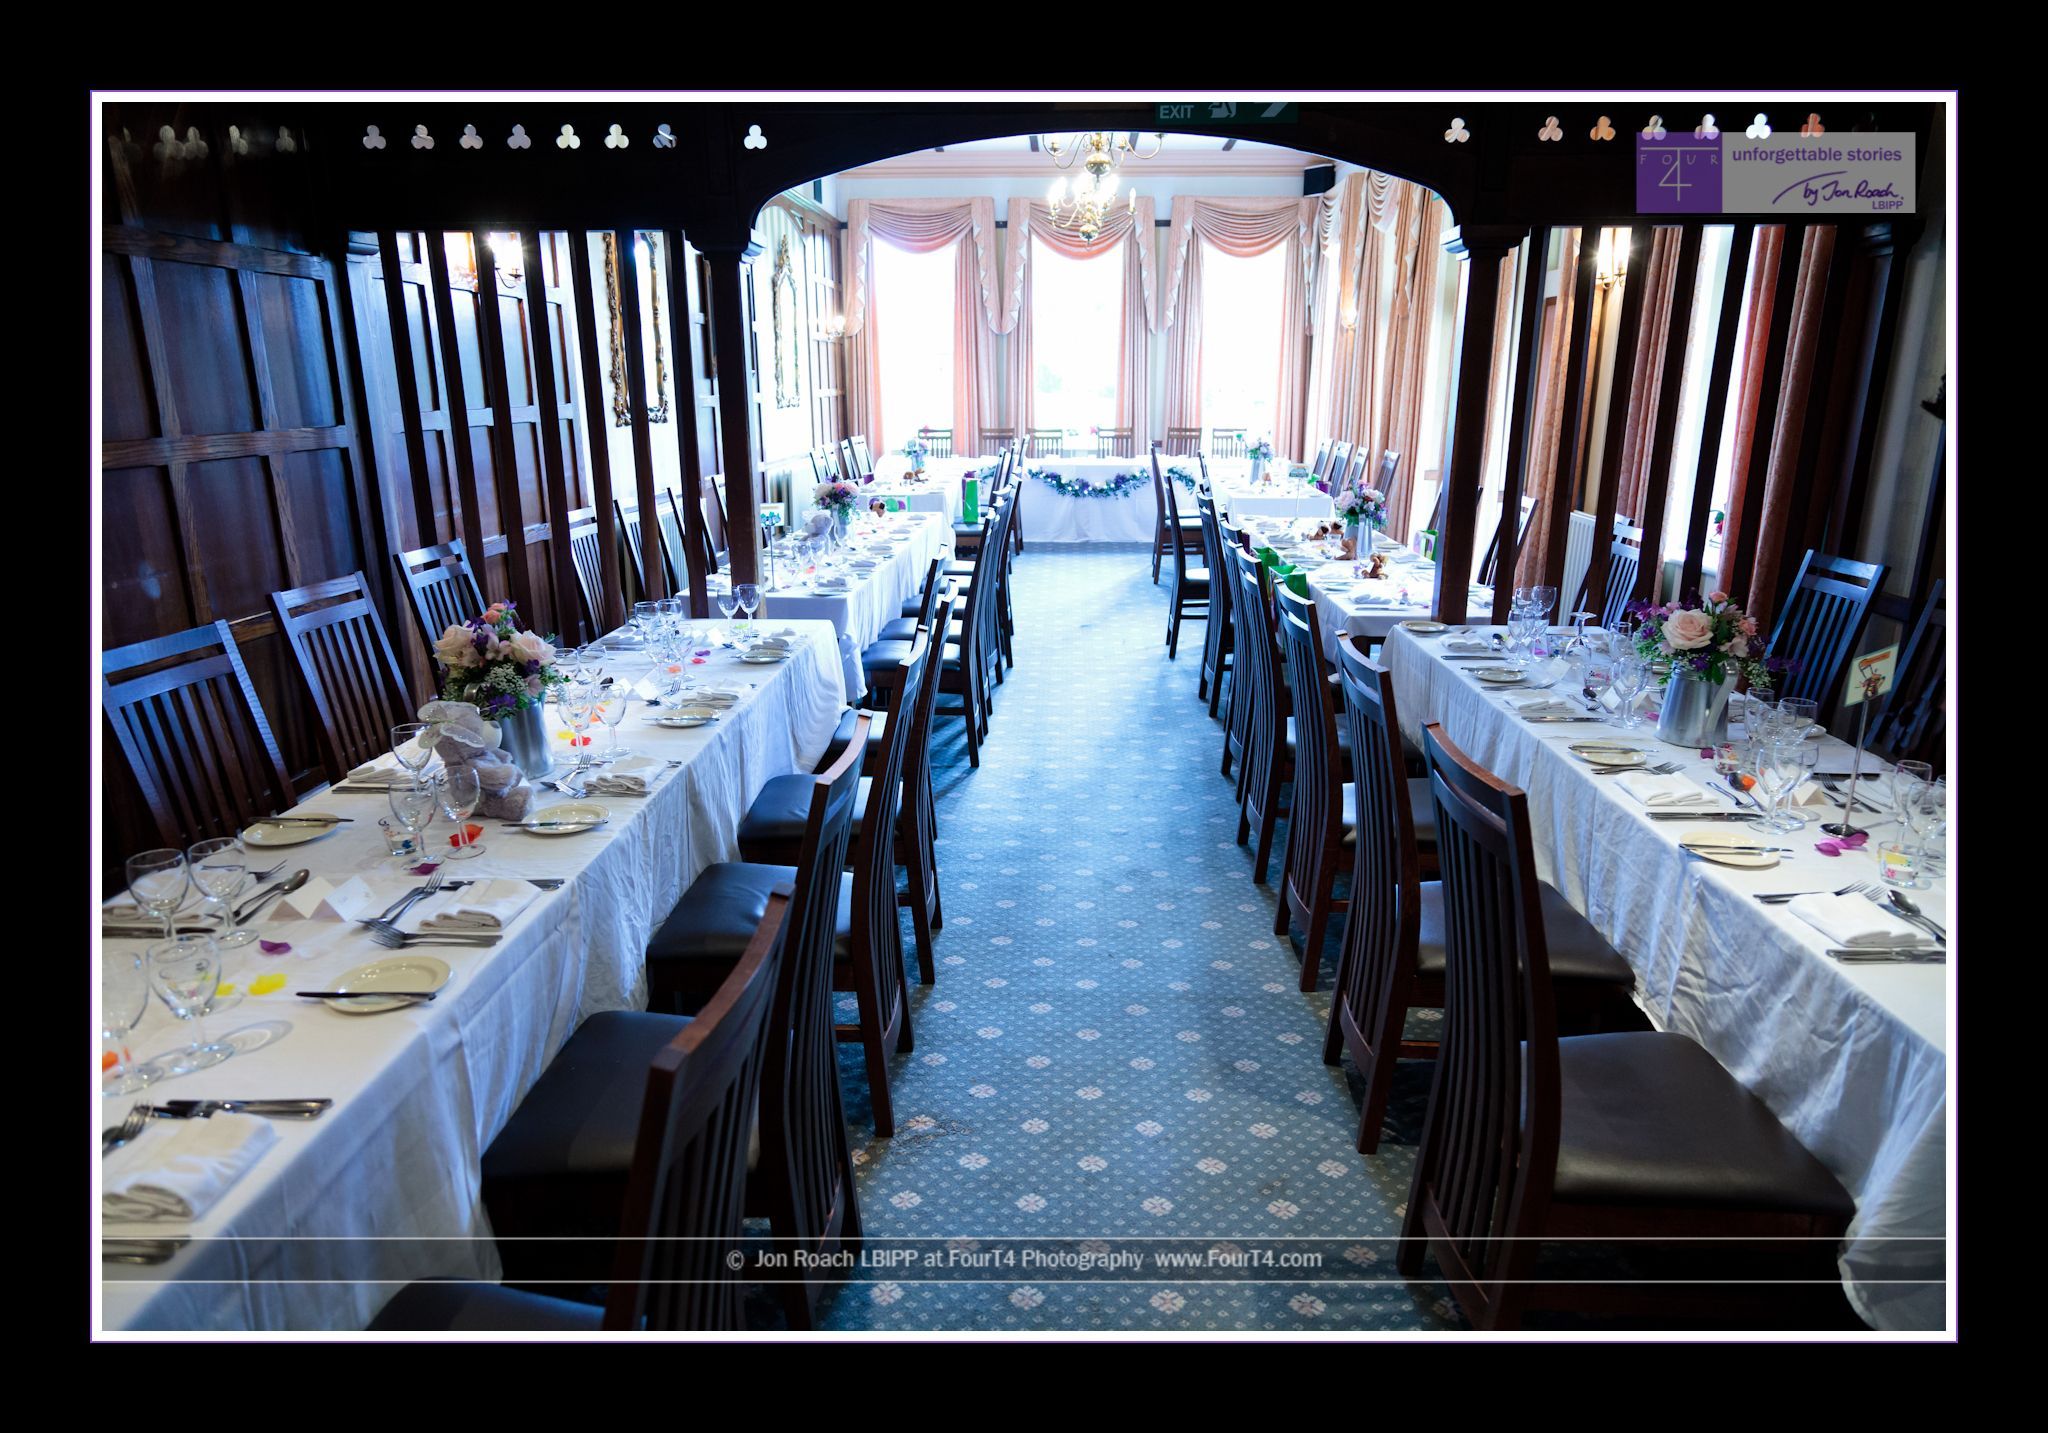 Dining Room At The Burley Manor Hotel Laid Out For A Wedding